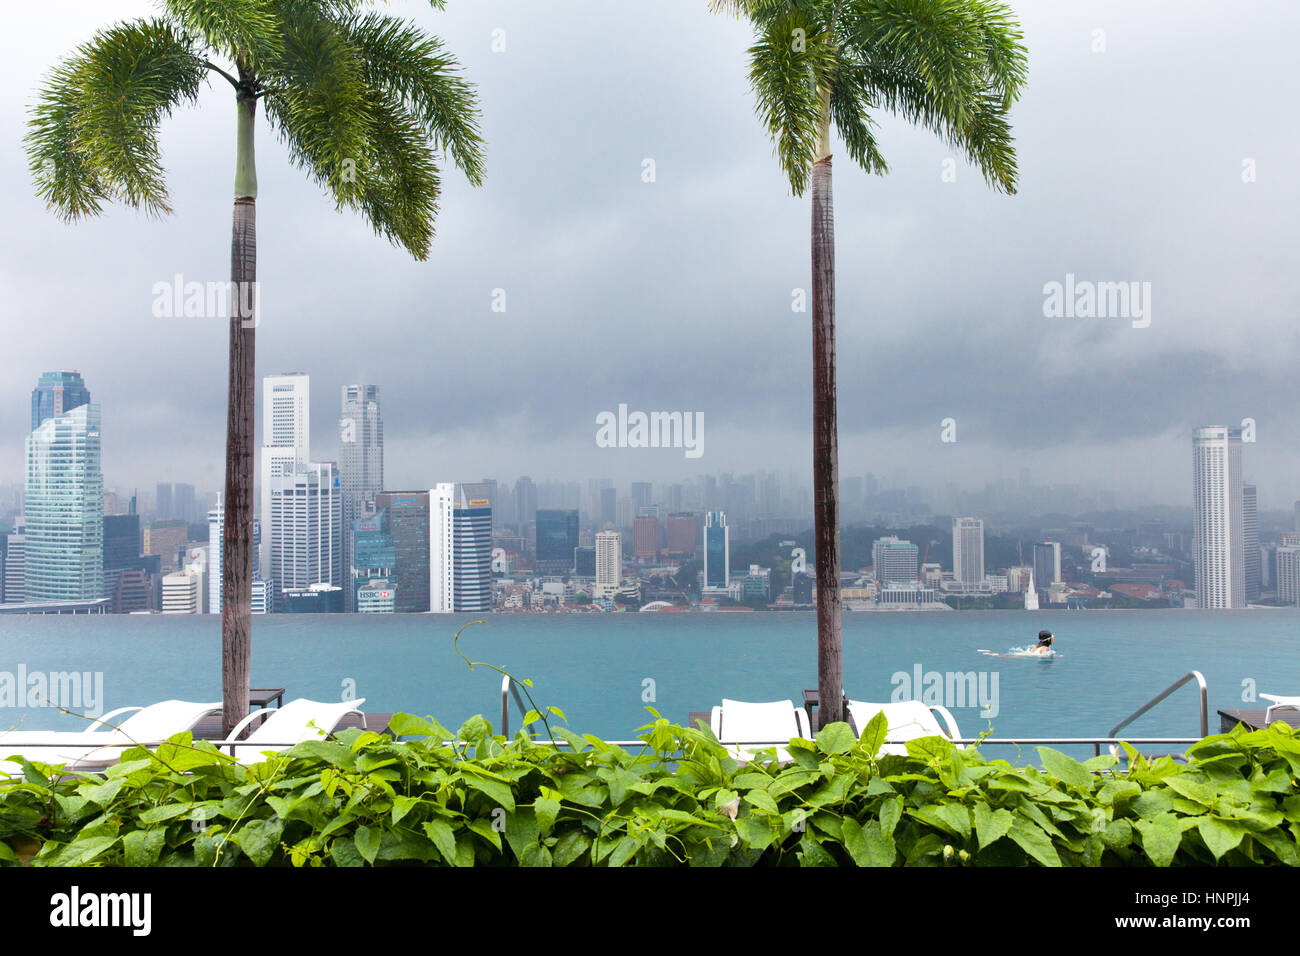 Girl swims in Infinity Pool on the roof of Marina Bay Sands Hotel on July 9, 2013 in Singapore. - Stock Image